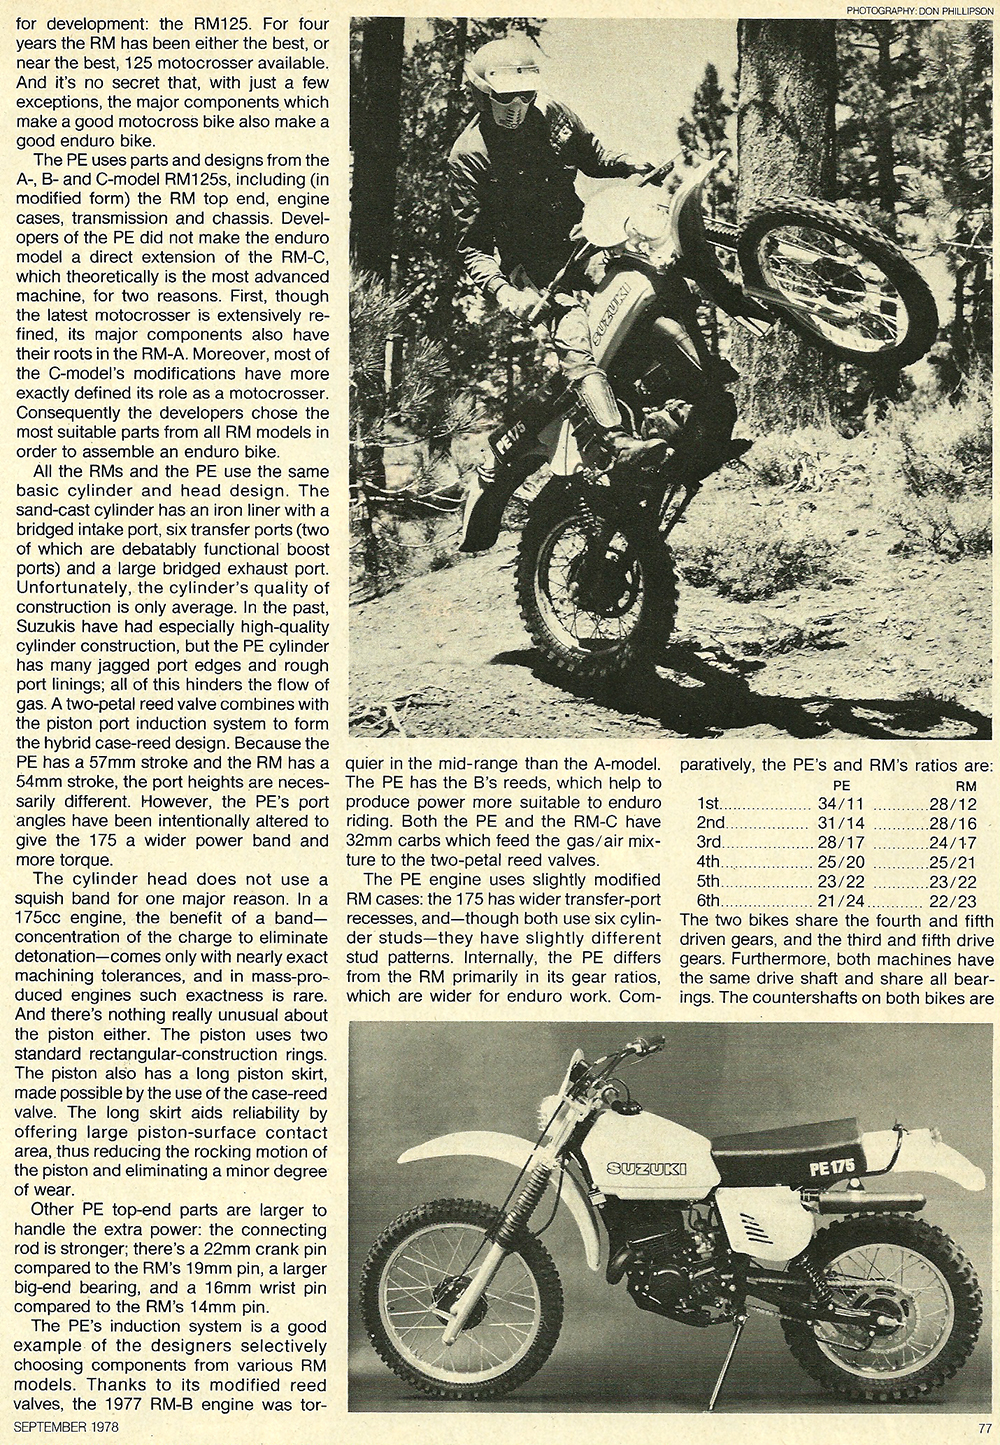 1978 Suzuki PE175 road test 02.jpg